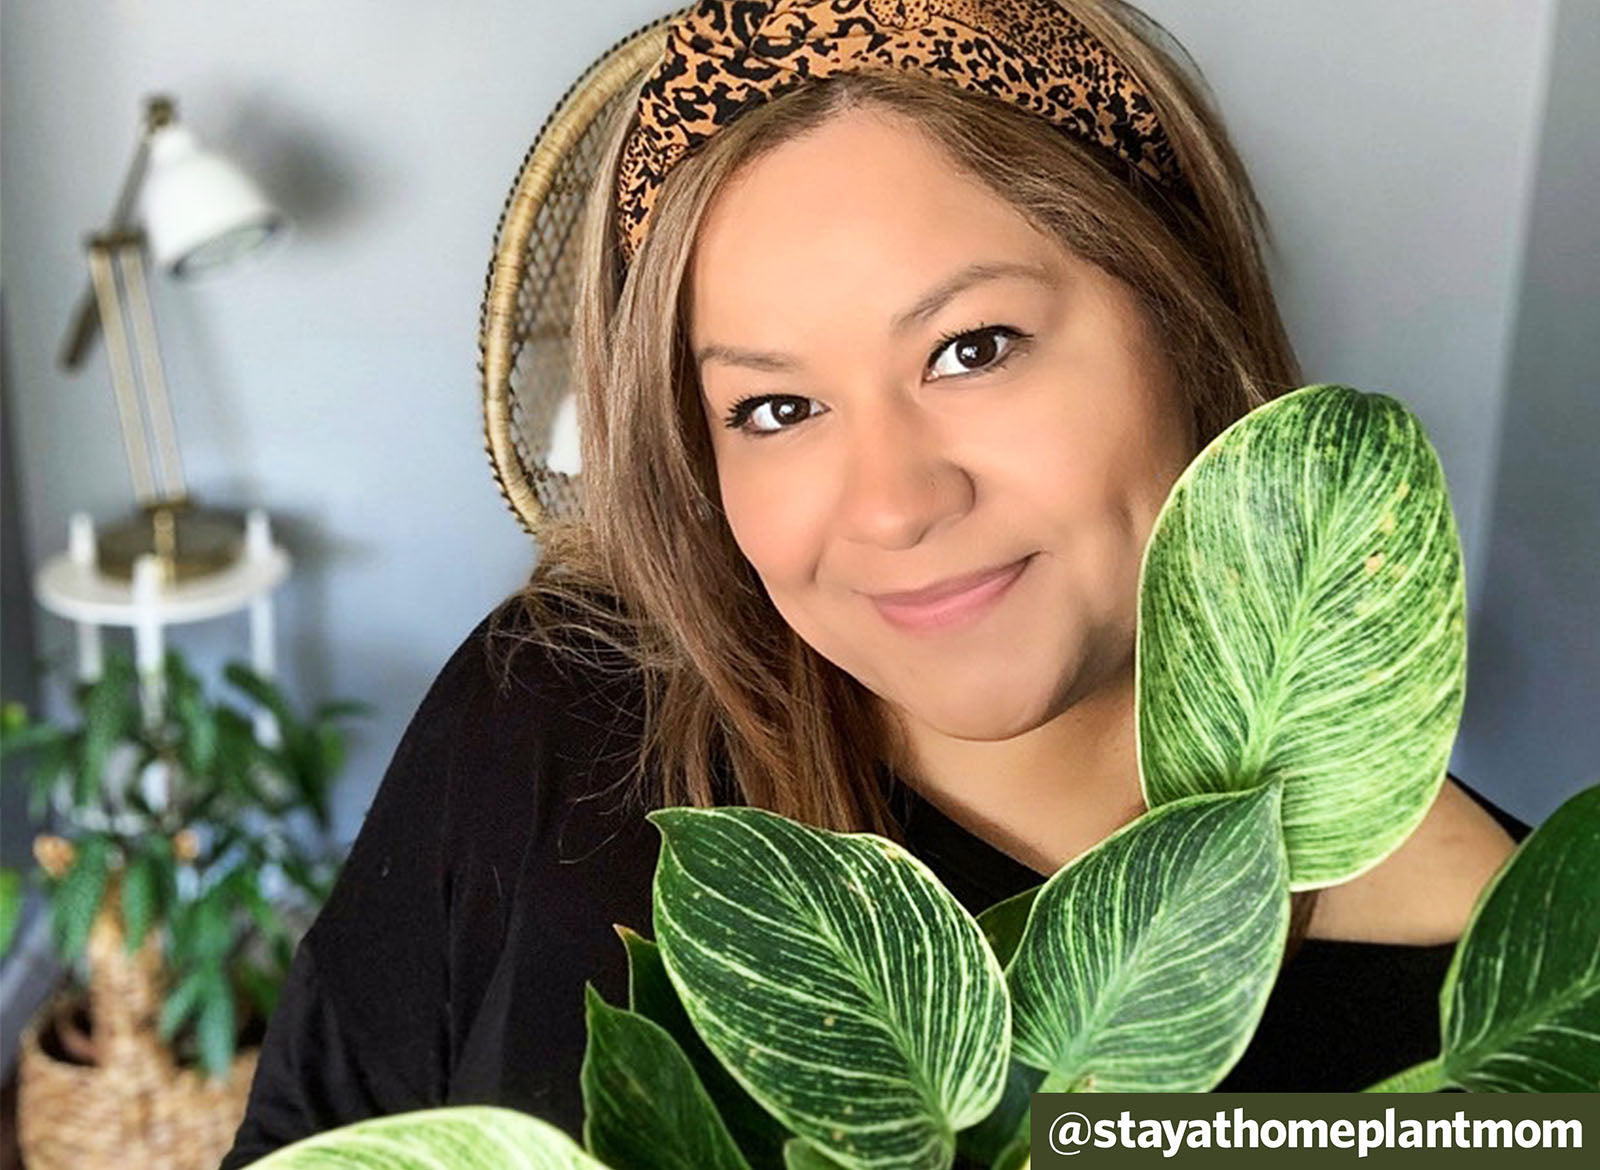 Q&A: That Plant Hoarding Life with @stayathomeplantmom